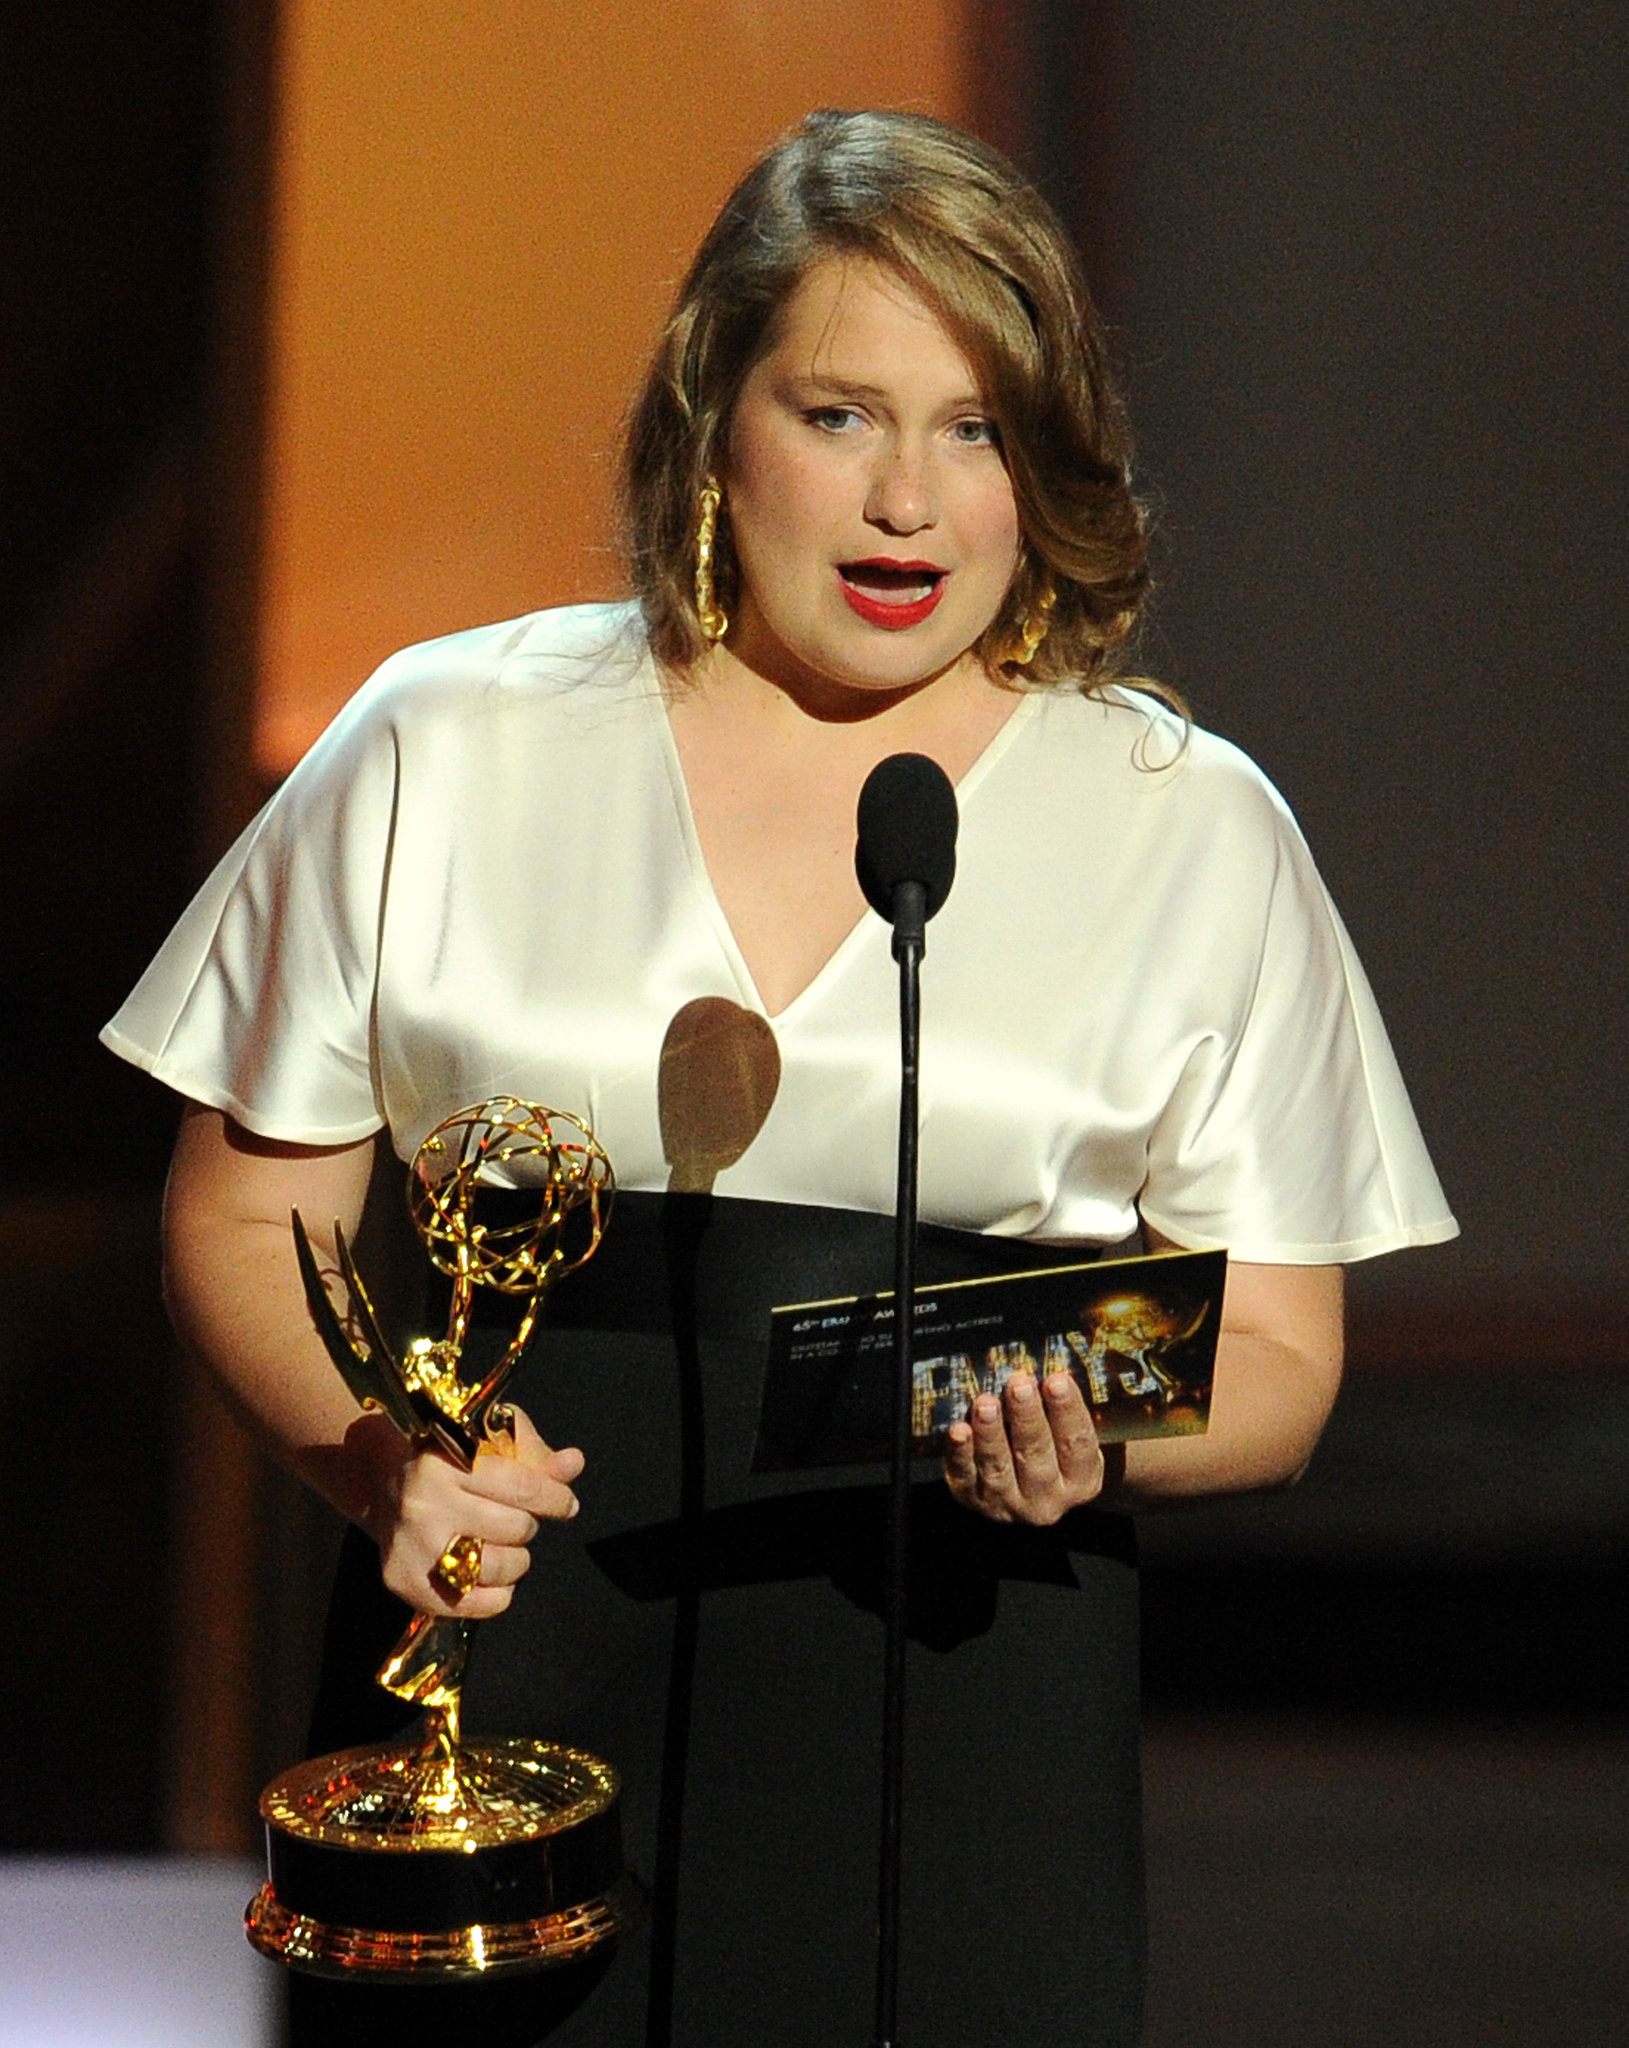 Actress Merritt Wever won the first award of the night for best supporting actress in a comedy, but she quickly exited the stage after saying she had to go.